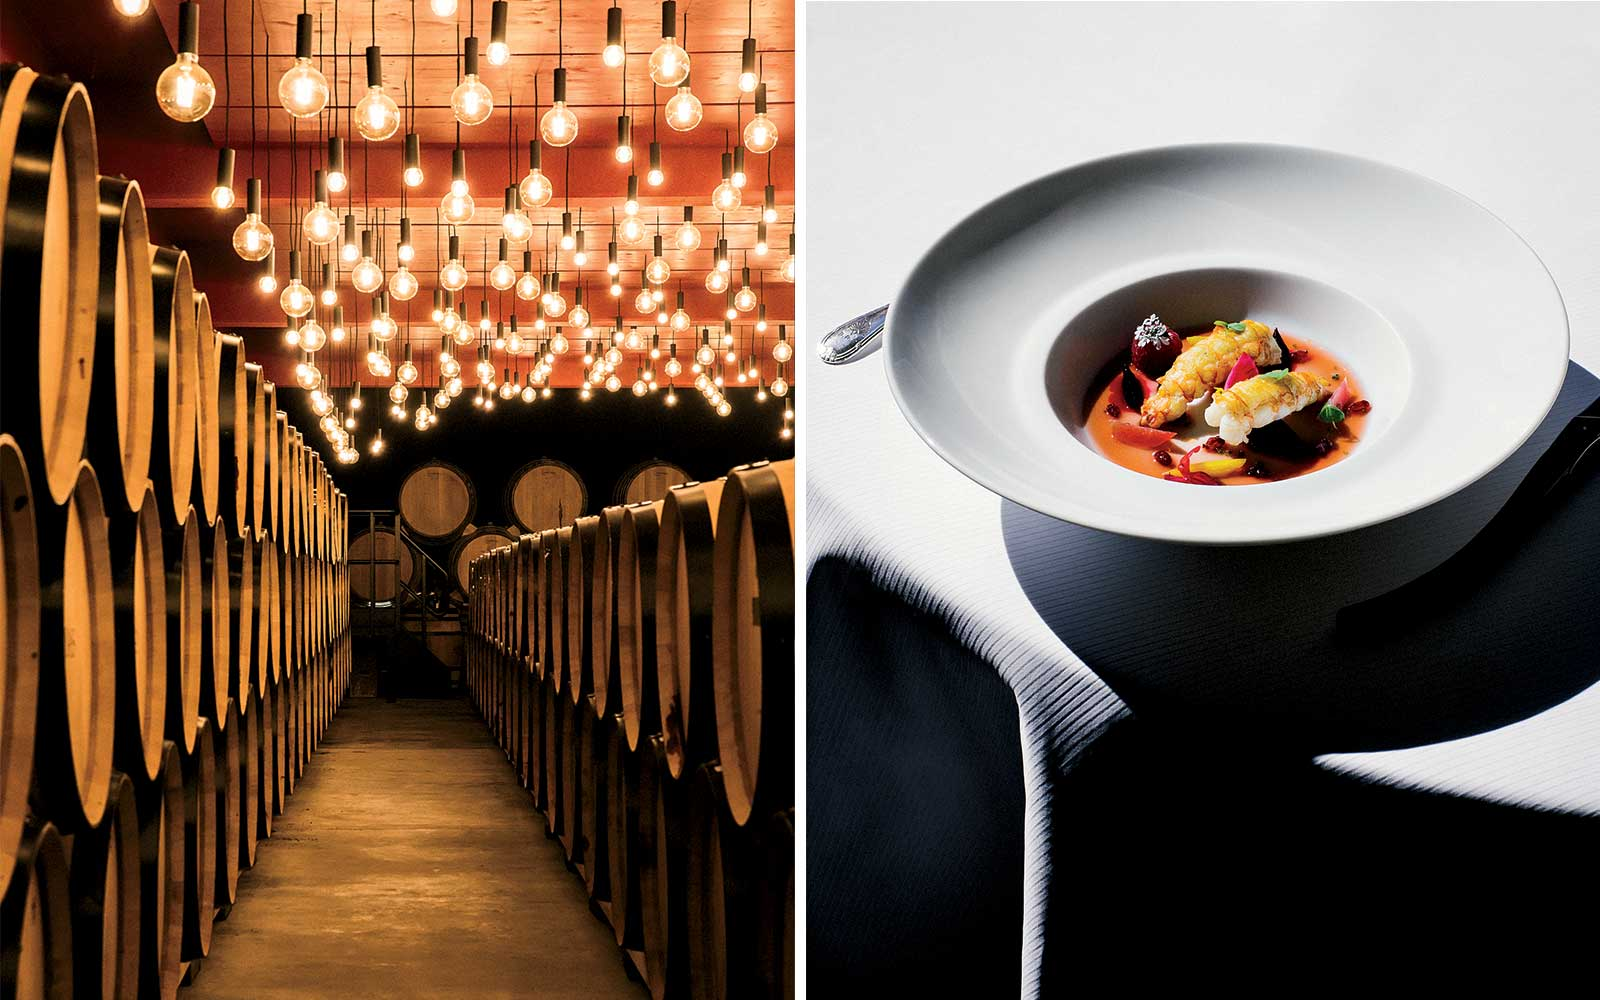 Wine and food in Switzerland